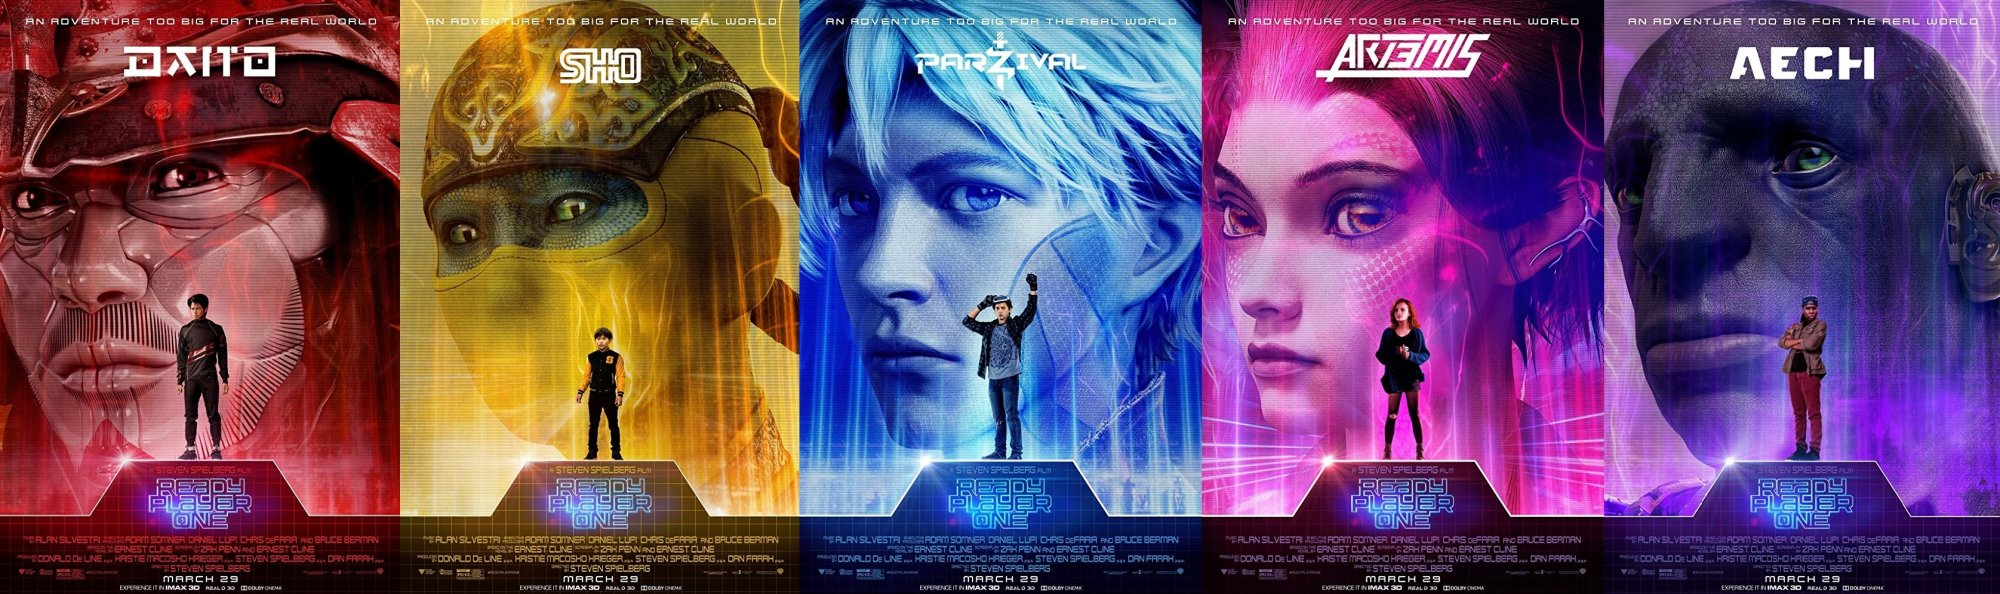 Future Man Review >> 'Ready Player One' Review: Future is Past | The Italian Rêve